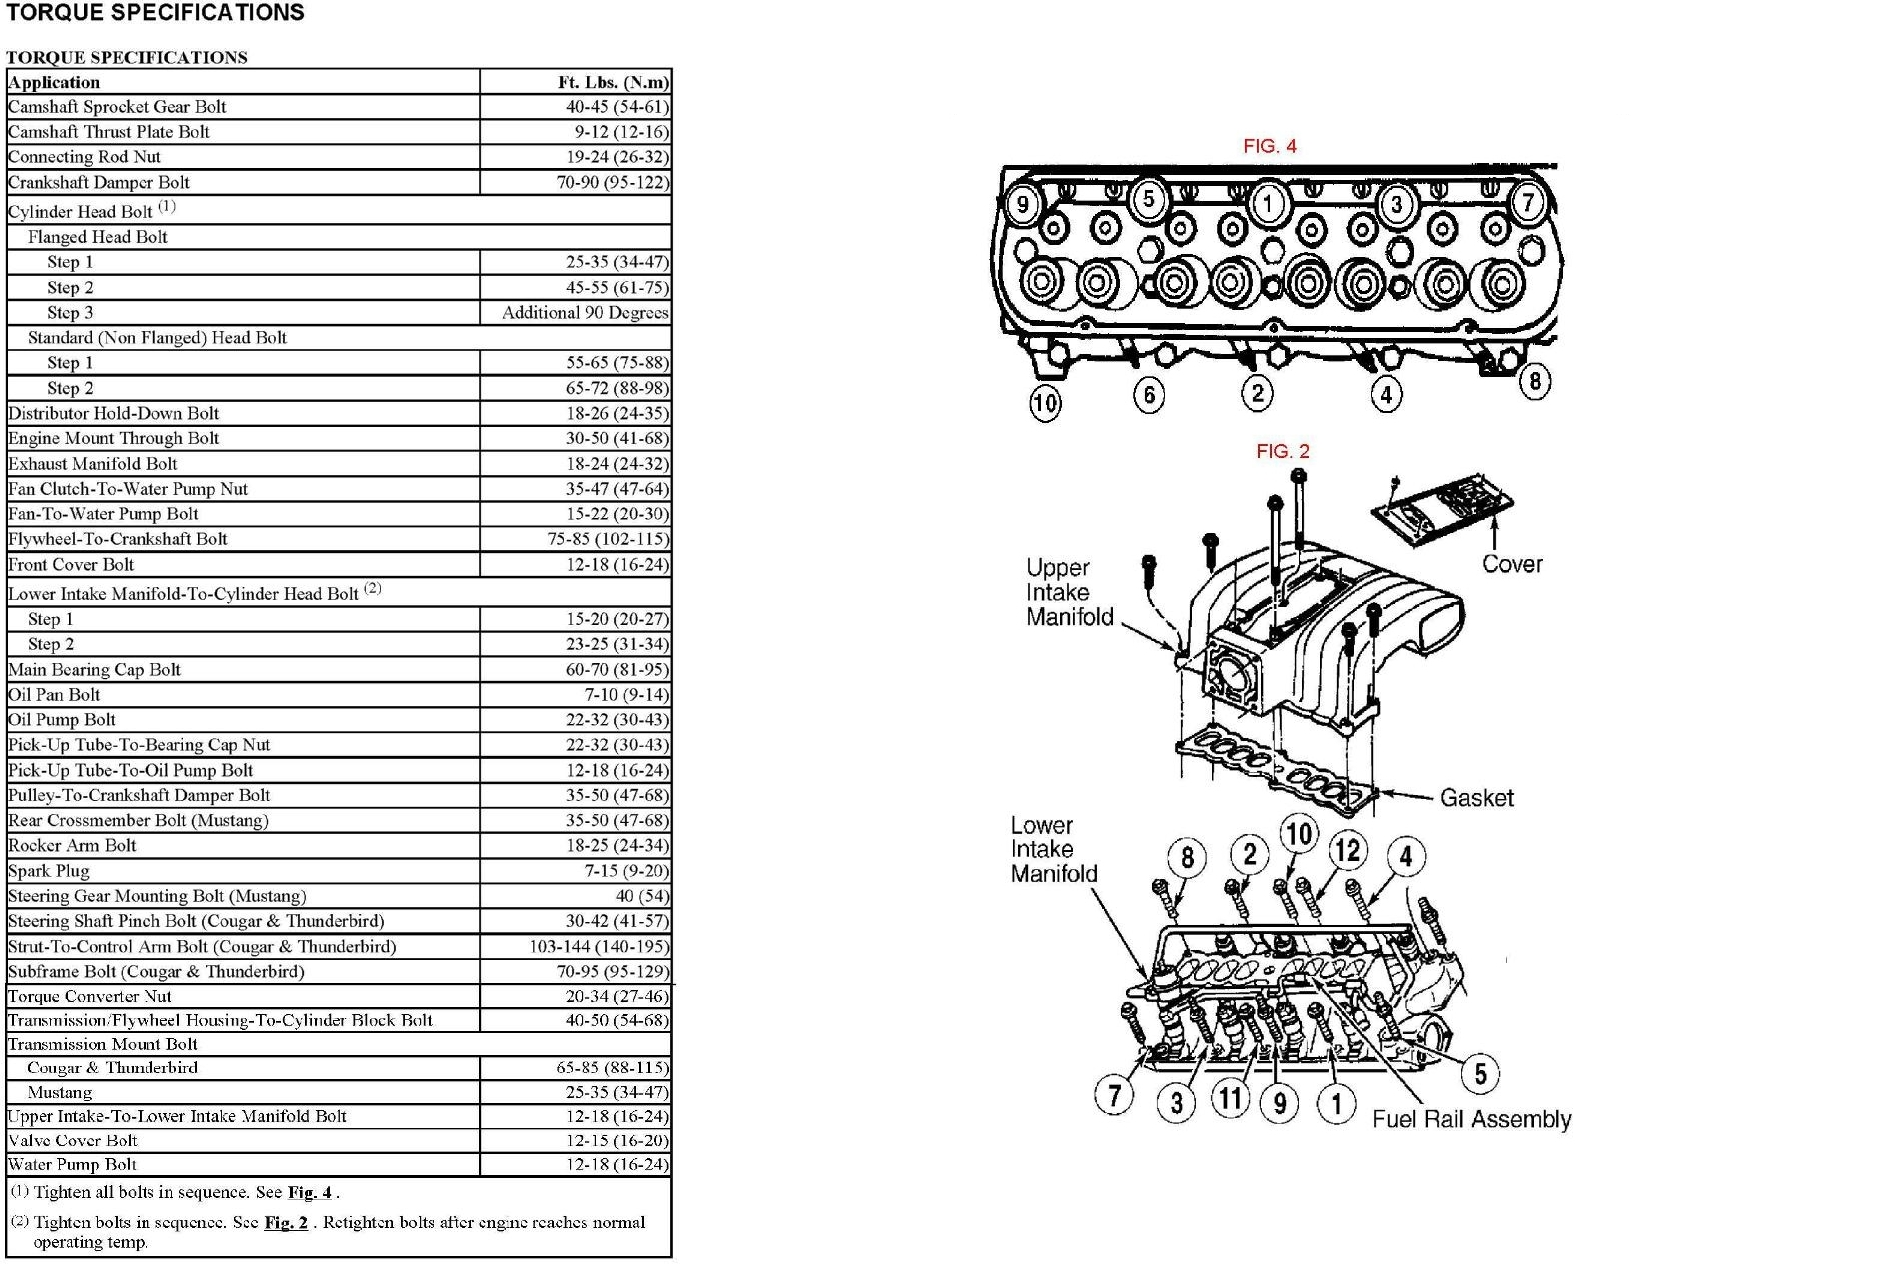 Torquespecs on 2001 Ford Ranger 3 0 Engine Torque Specs